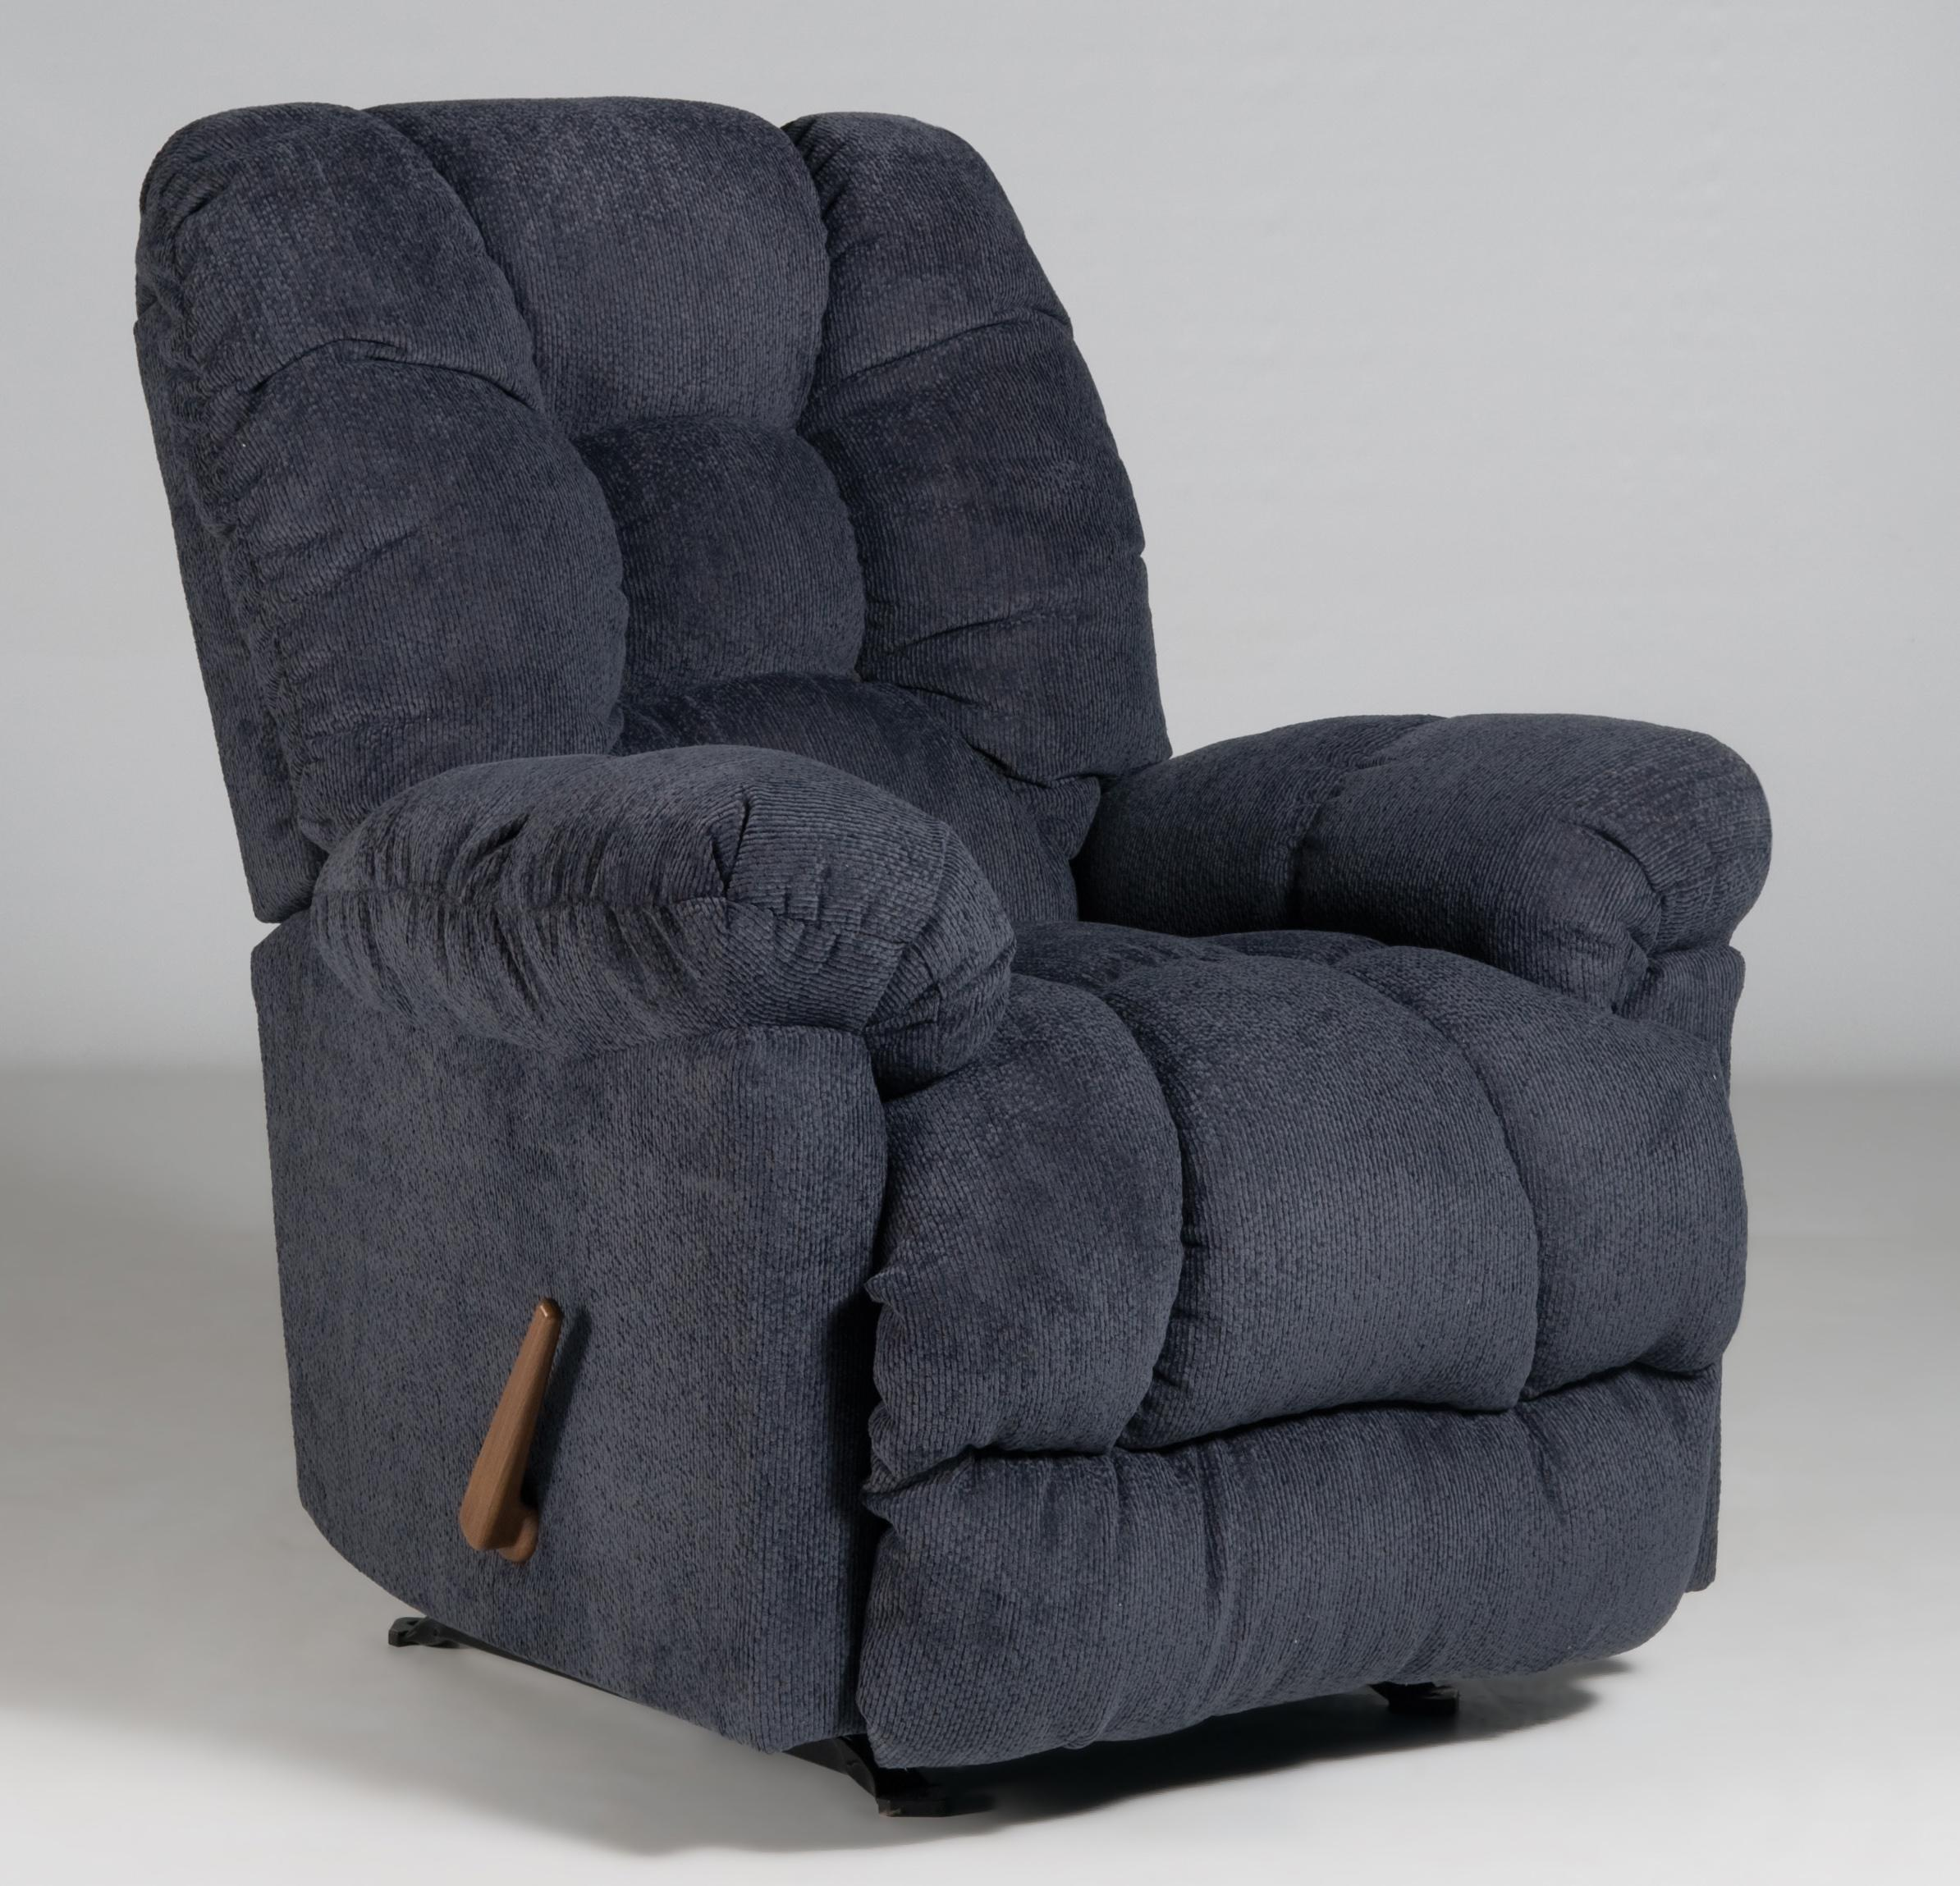 Best Home Furnishings Recliners - Medium Orlando Rocker Recliner - Item Number: 6N47